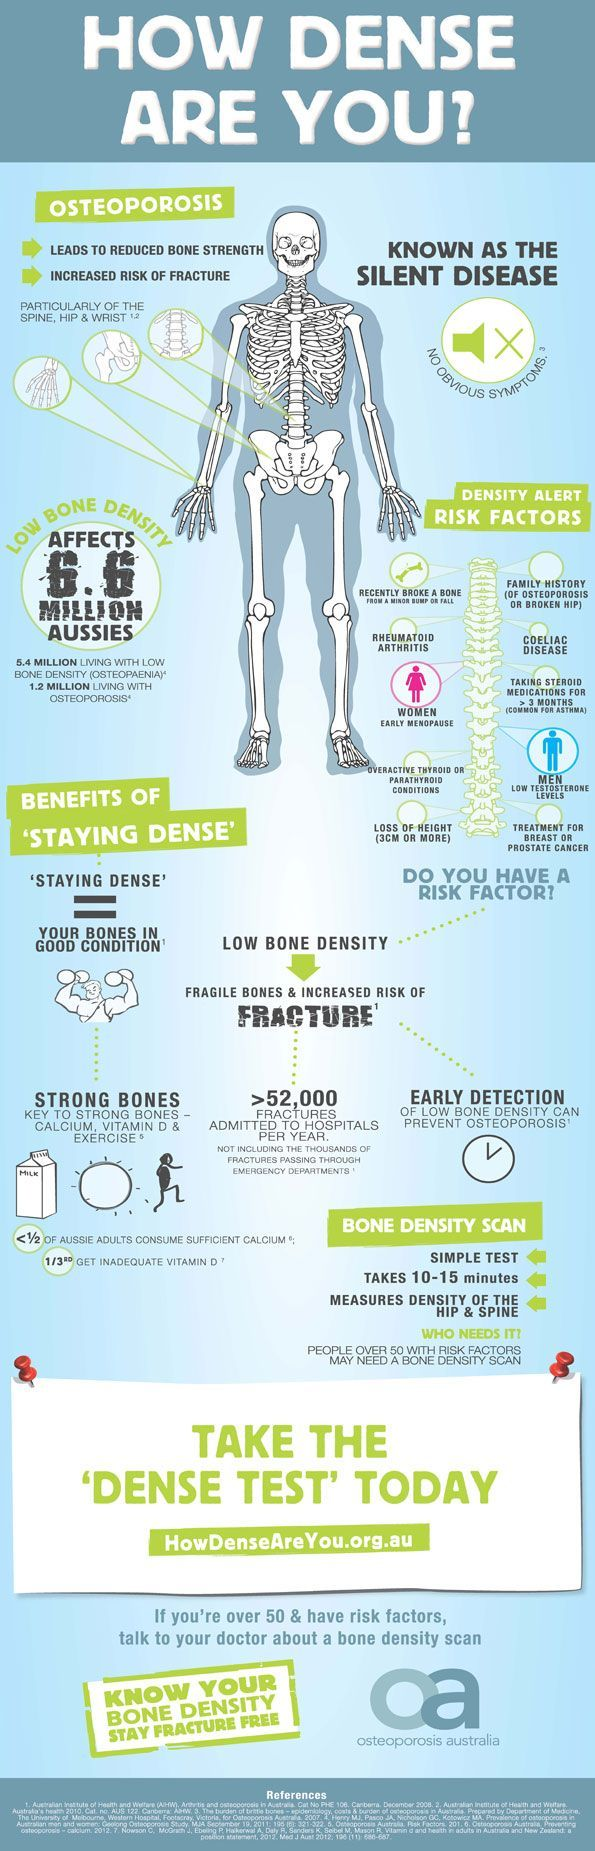 26++ Where does osteoporosis occur most frequently information